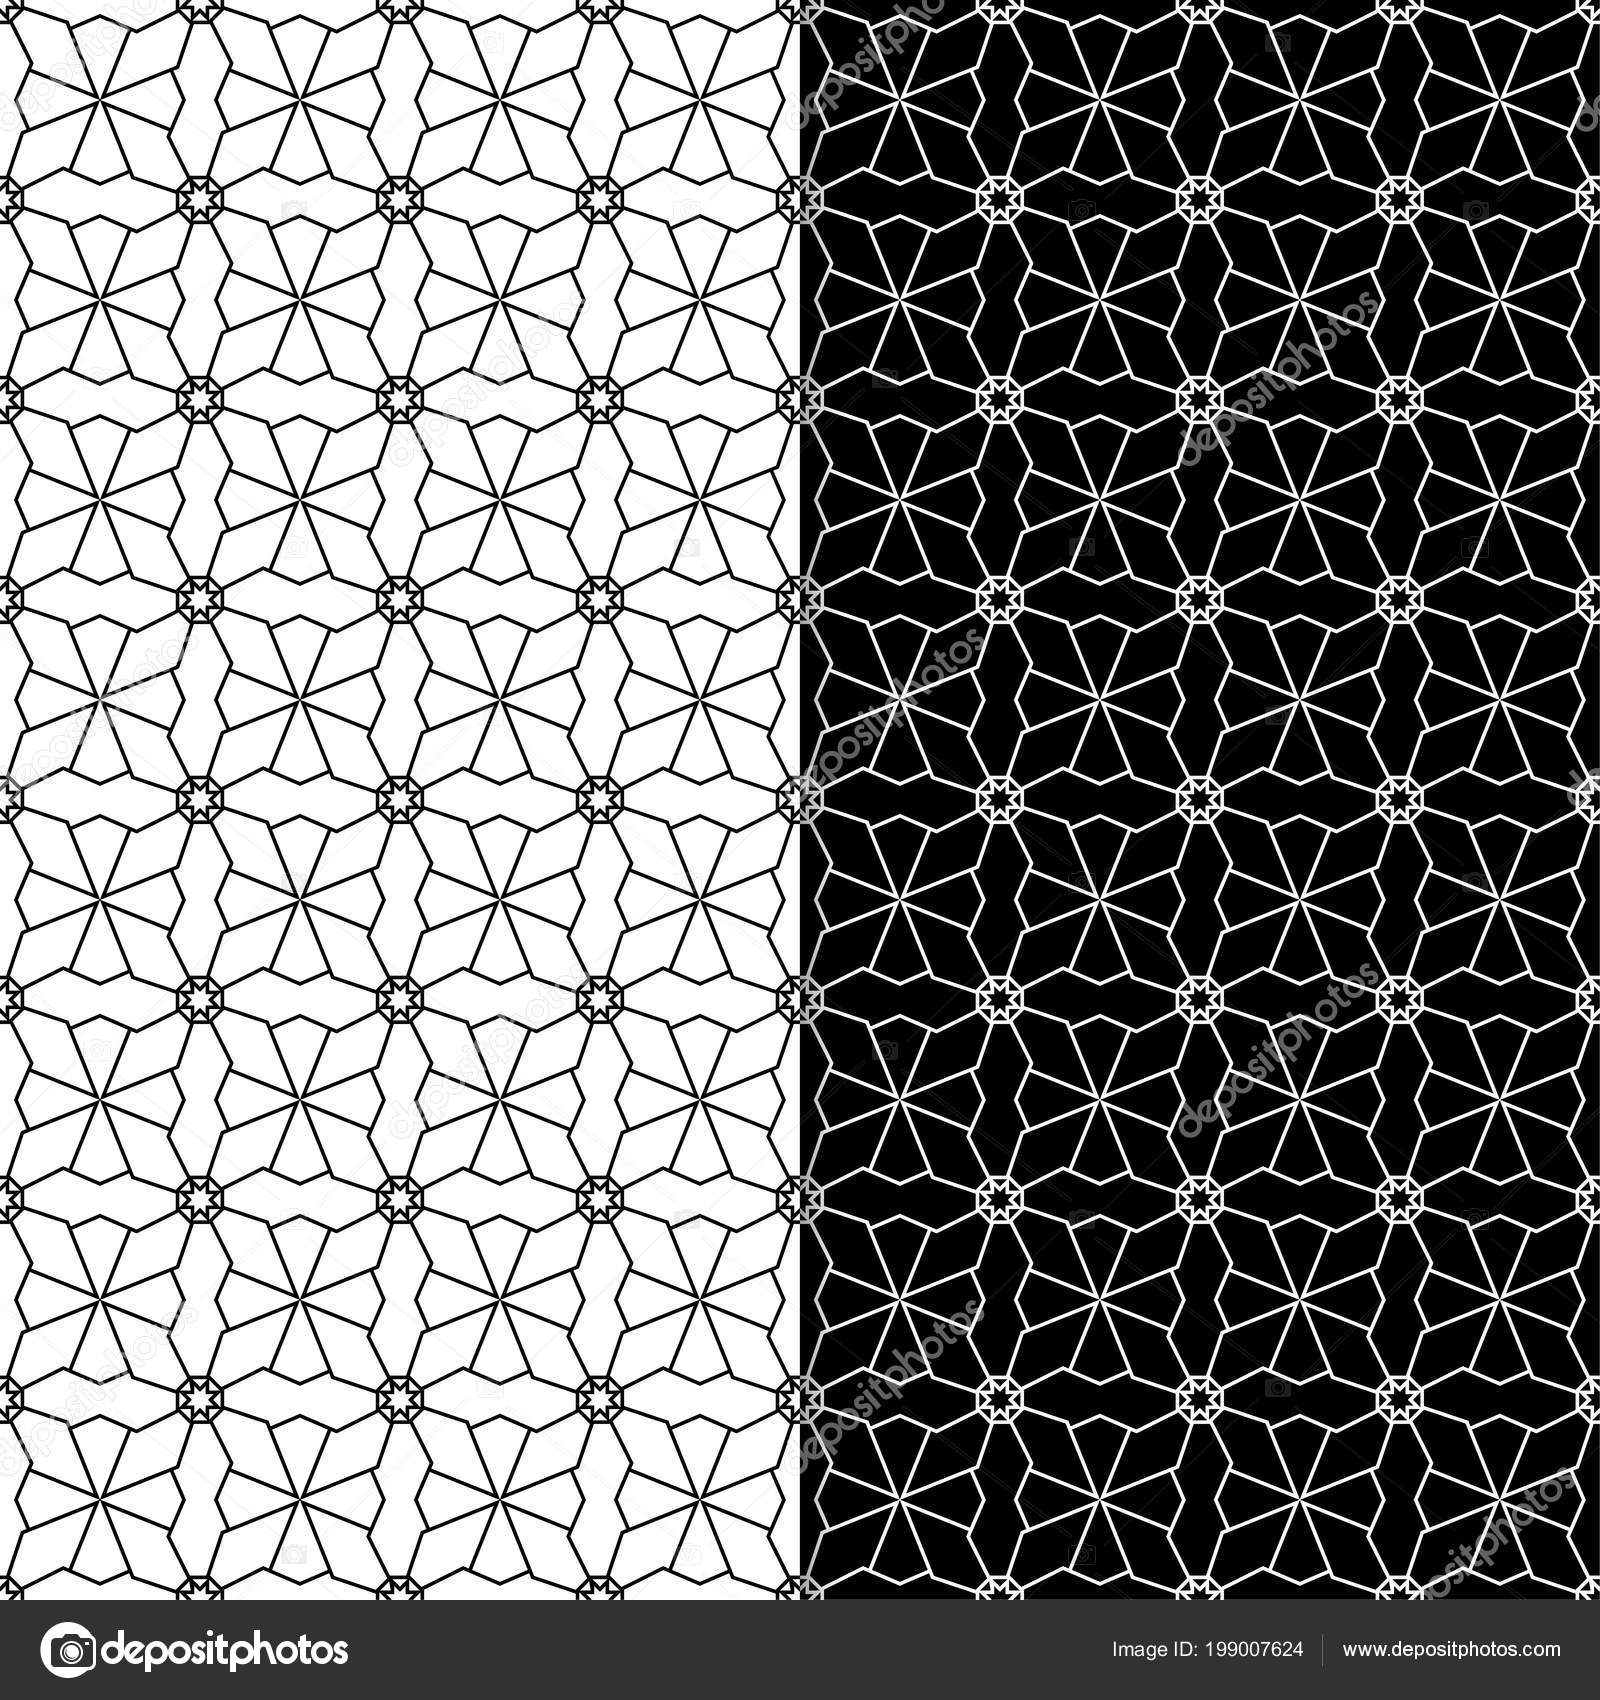 Black And White Geometric Set Of Seamless Patterns For Web,